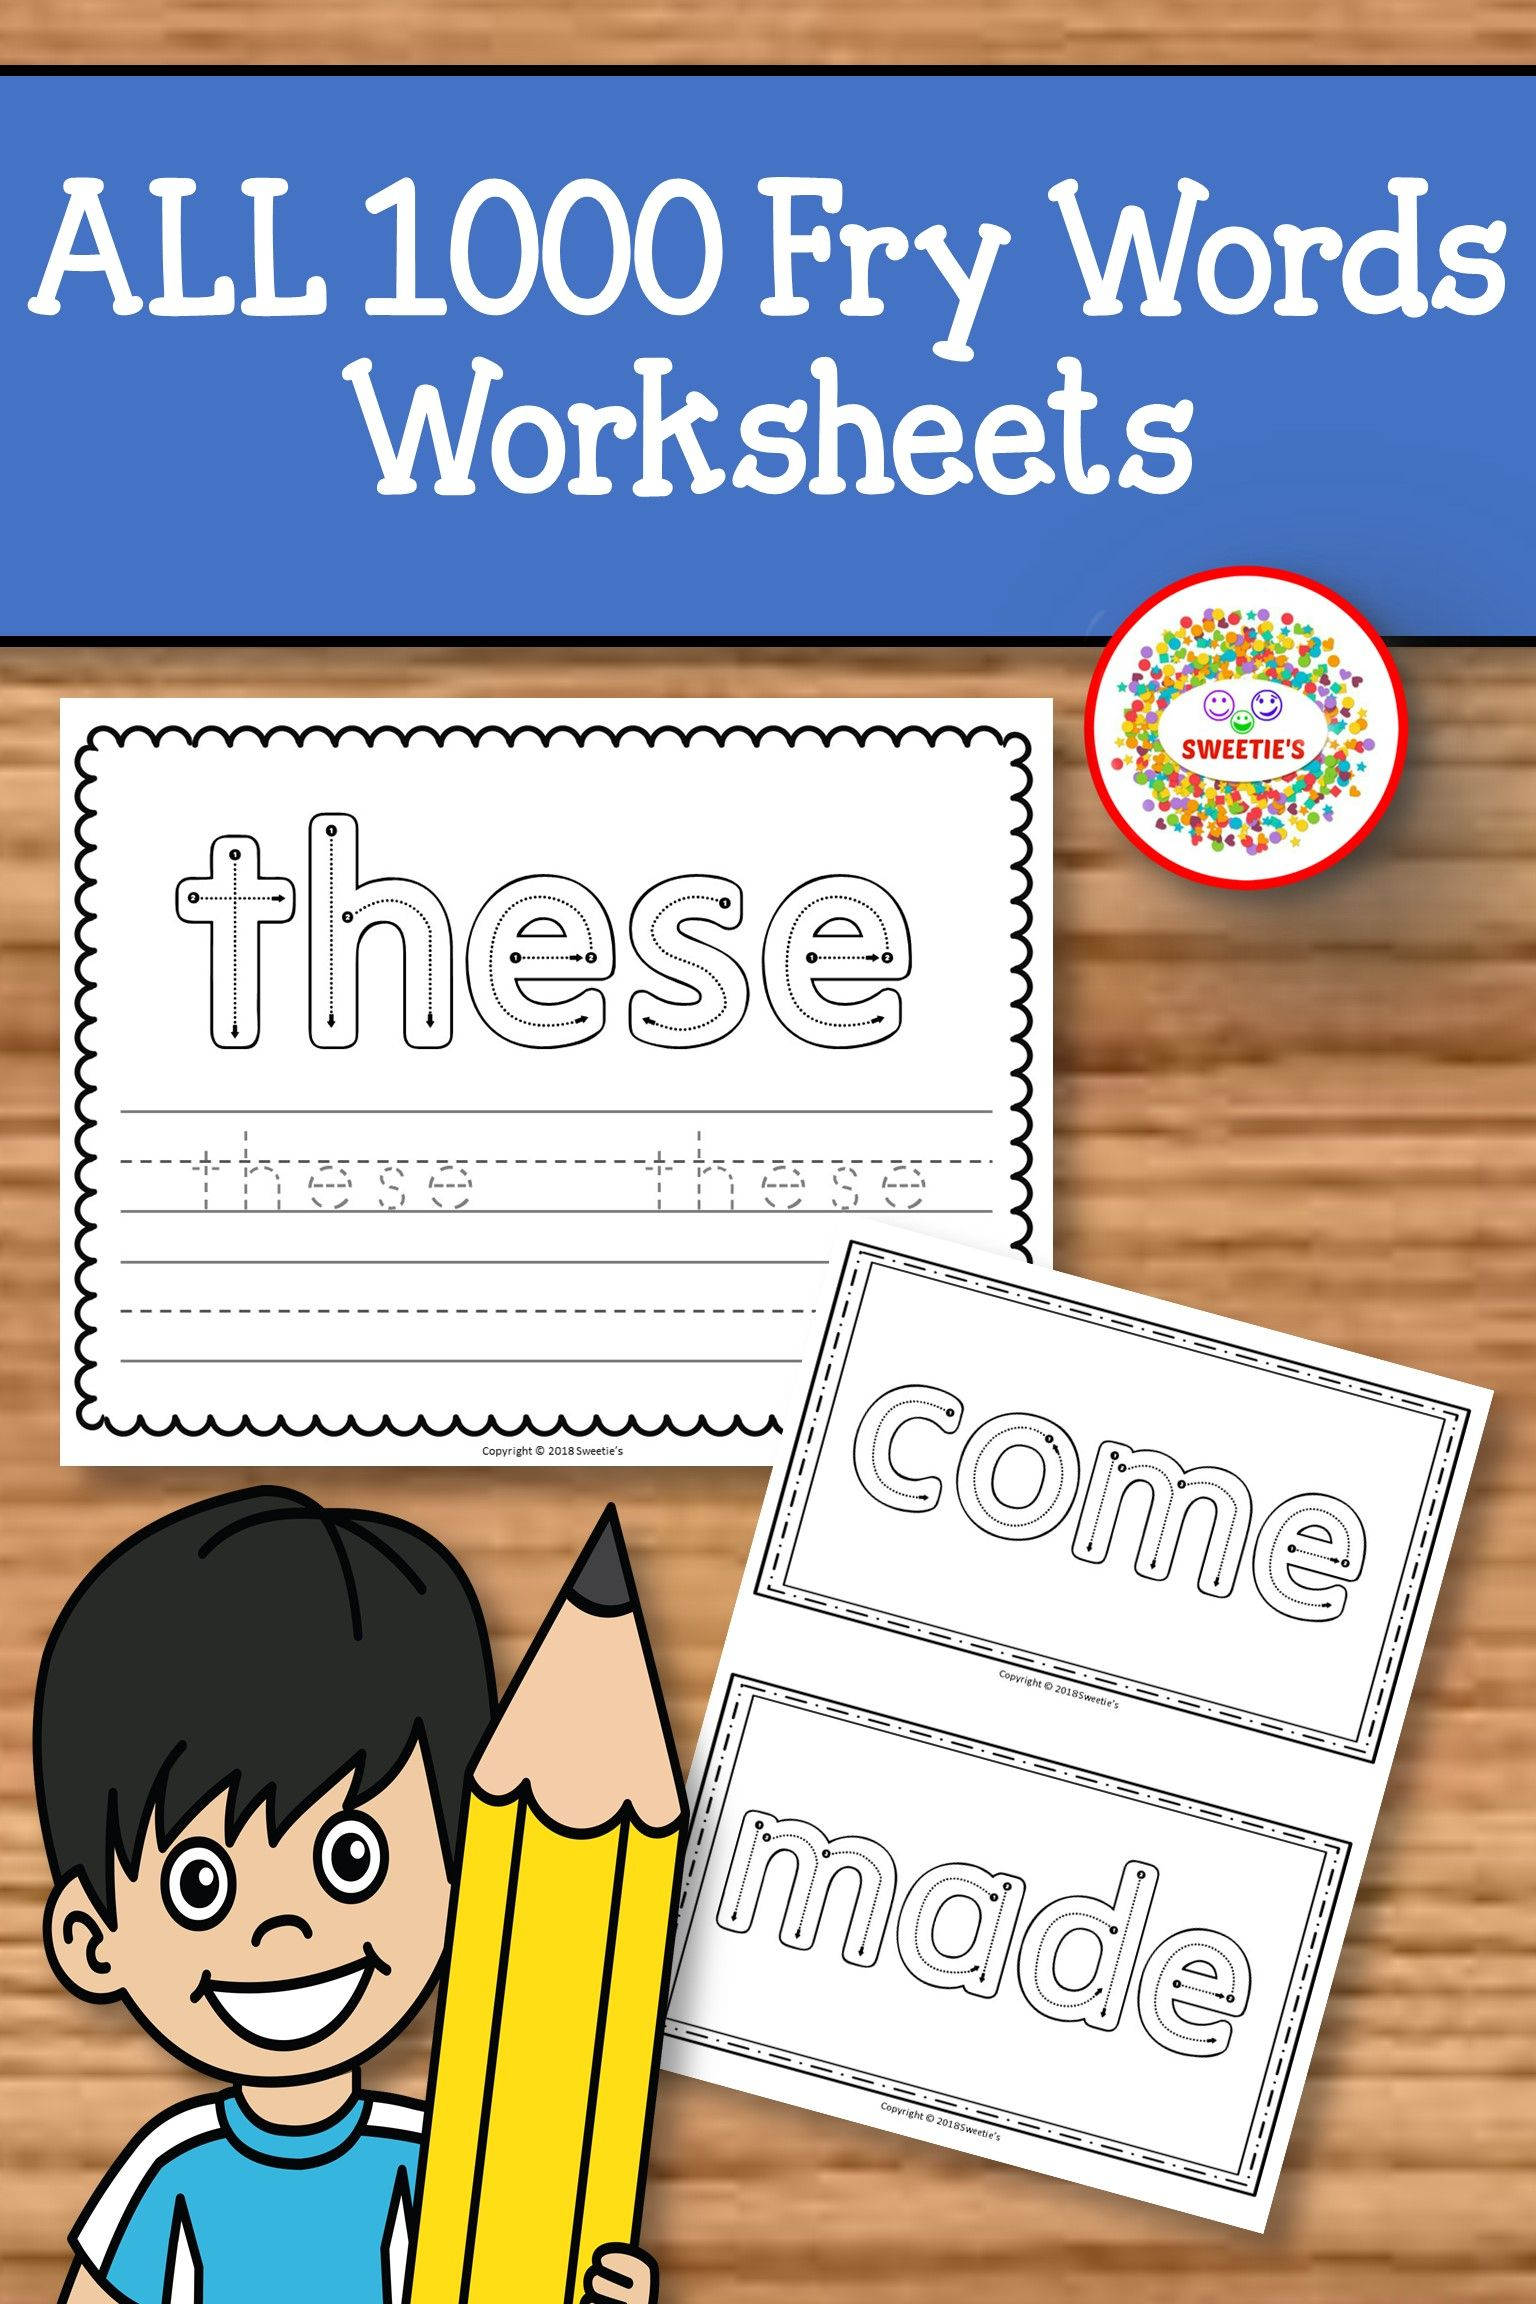 hight resolution of Sight Words Worksheets For 3rd Grade   Printable Worksheets and Activities  for Teachers